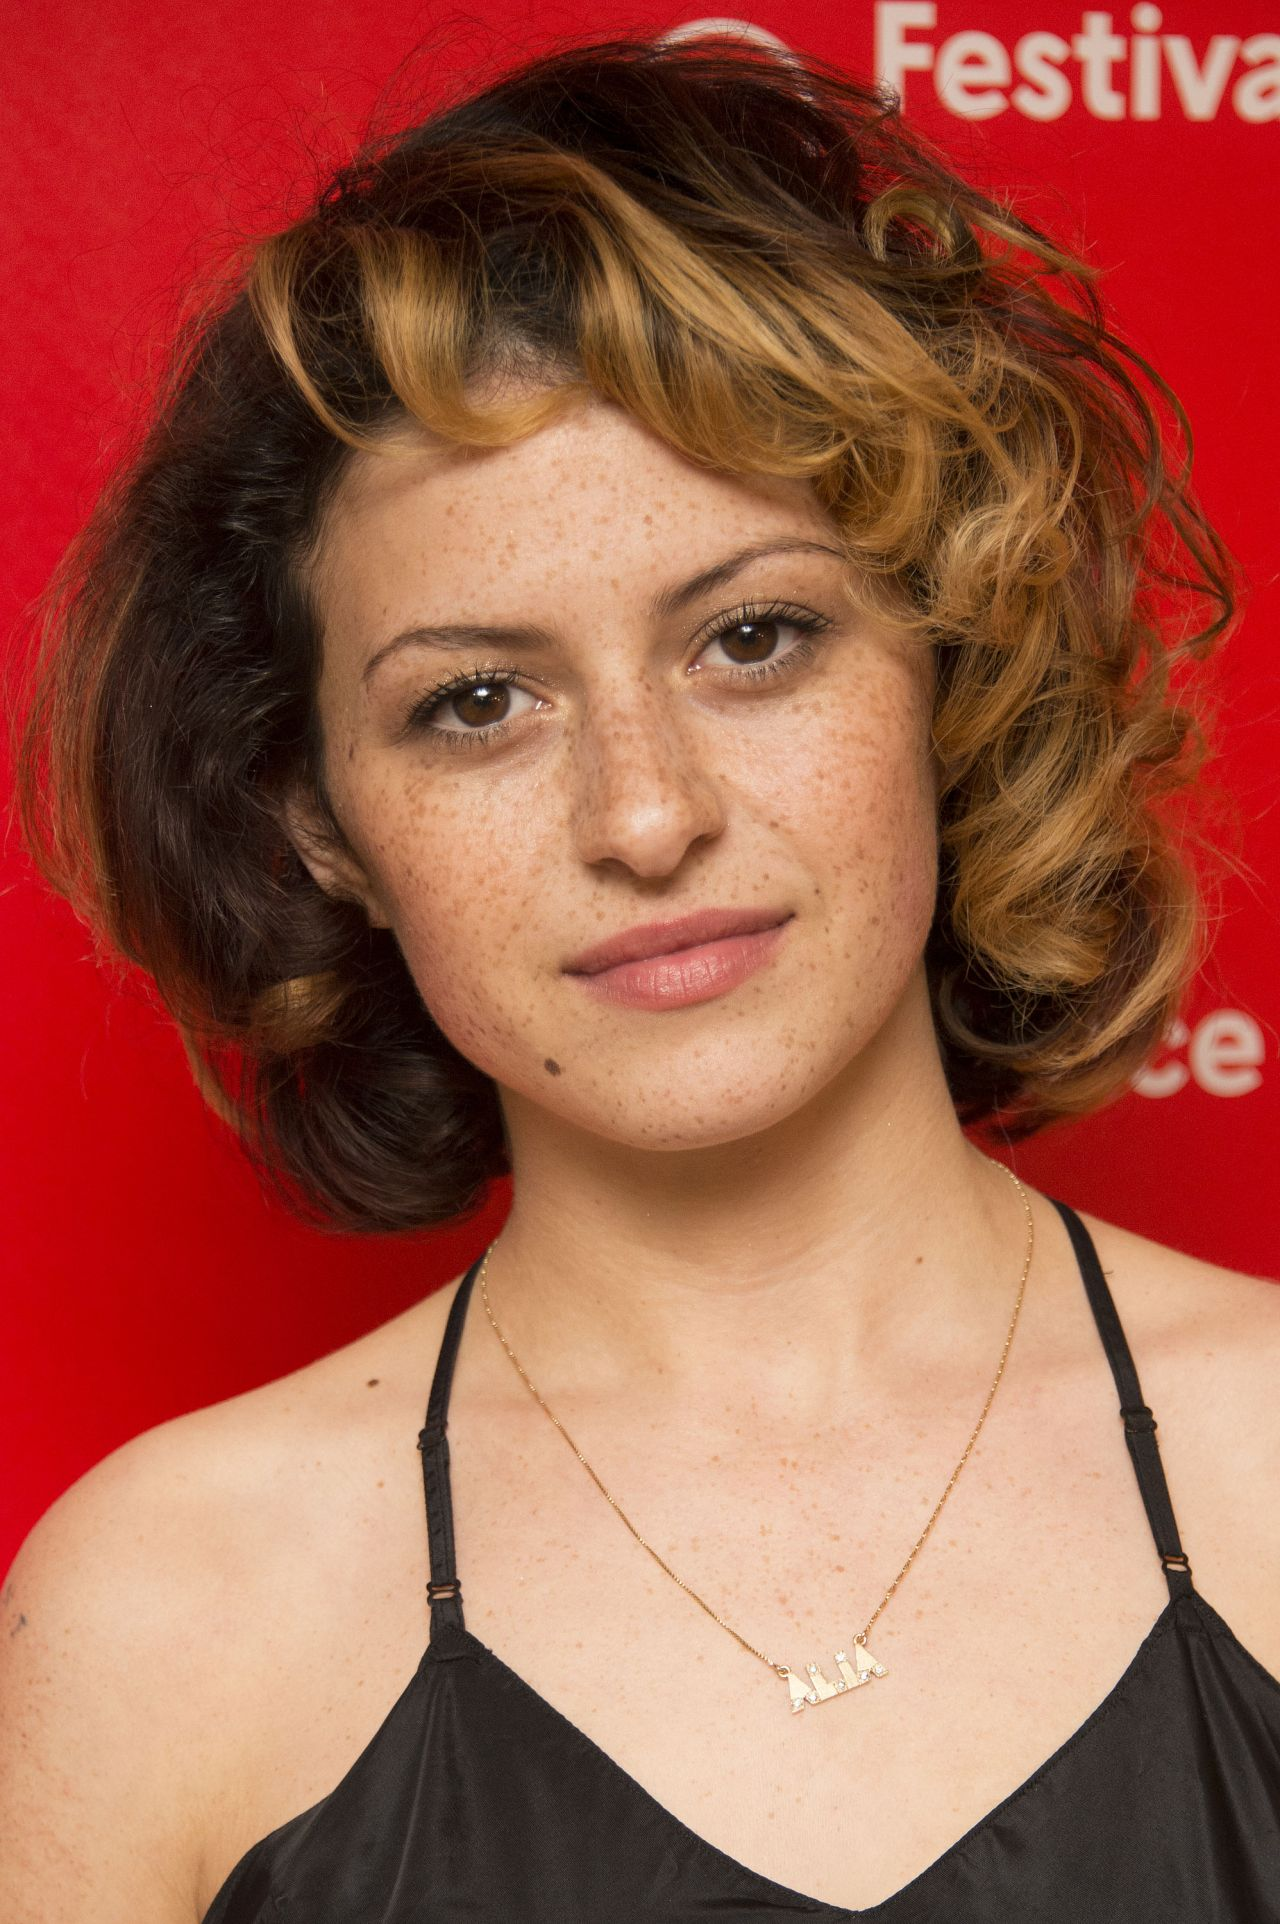 Alia Shawkat Nasty Baby Premiere At Sundance In Park City